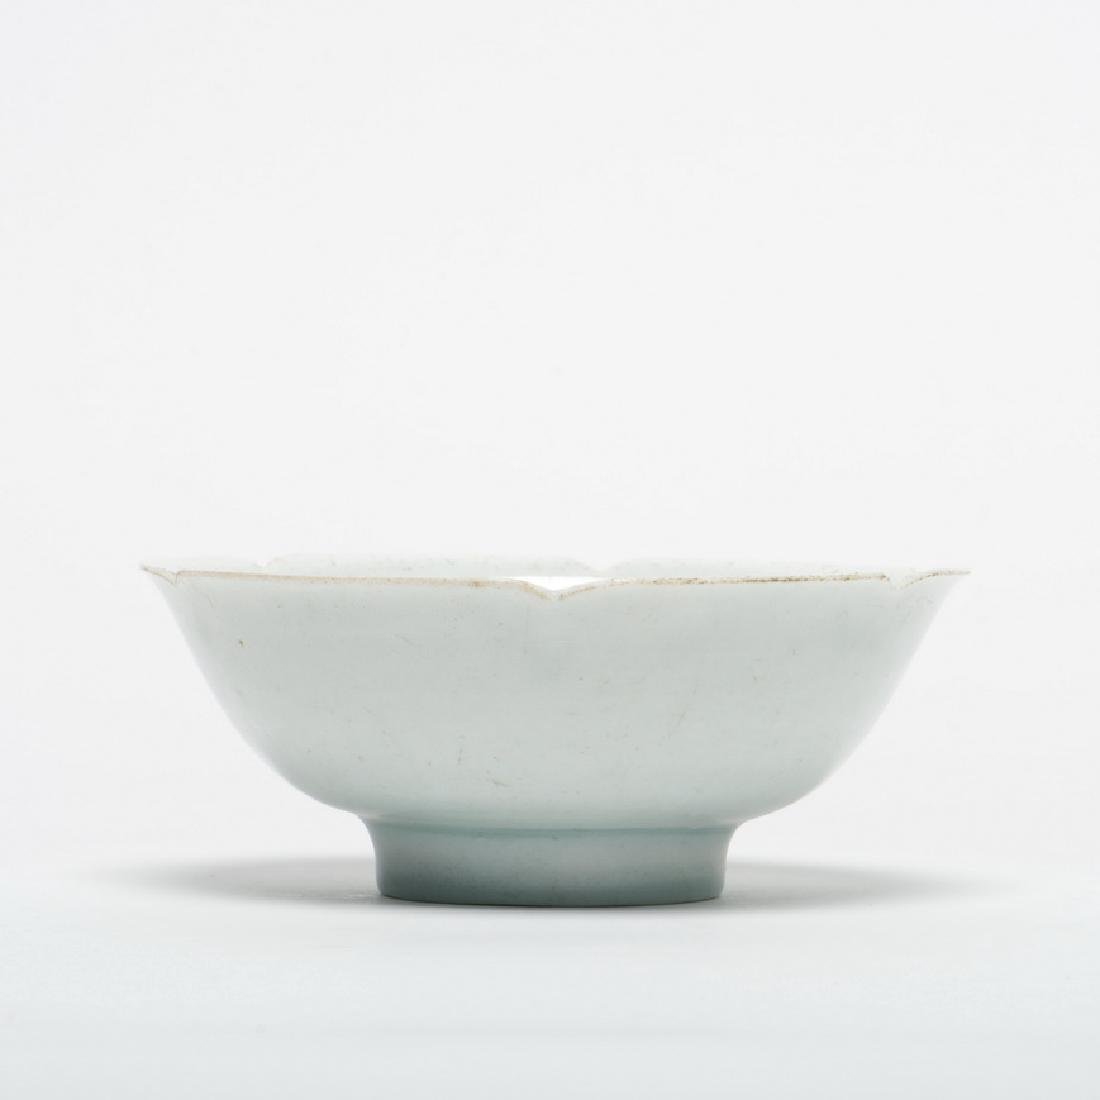 A Ying Qing Petal-Form Tea Bowl, Song Dynasty